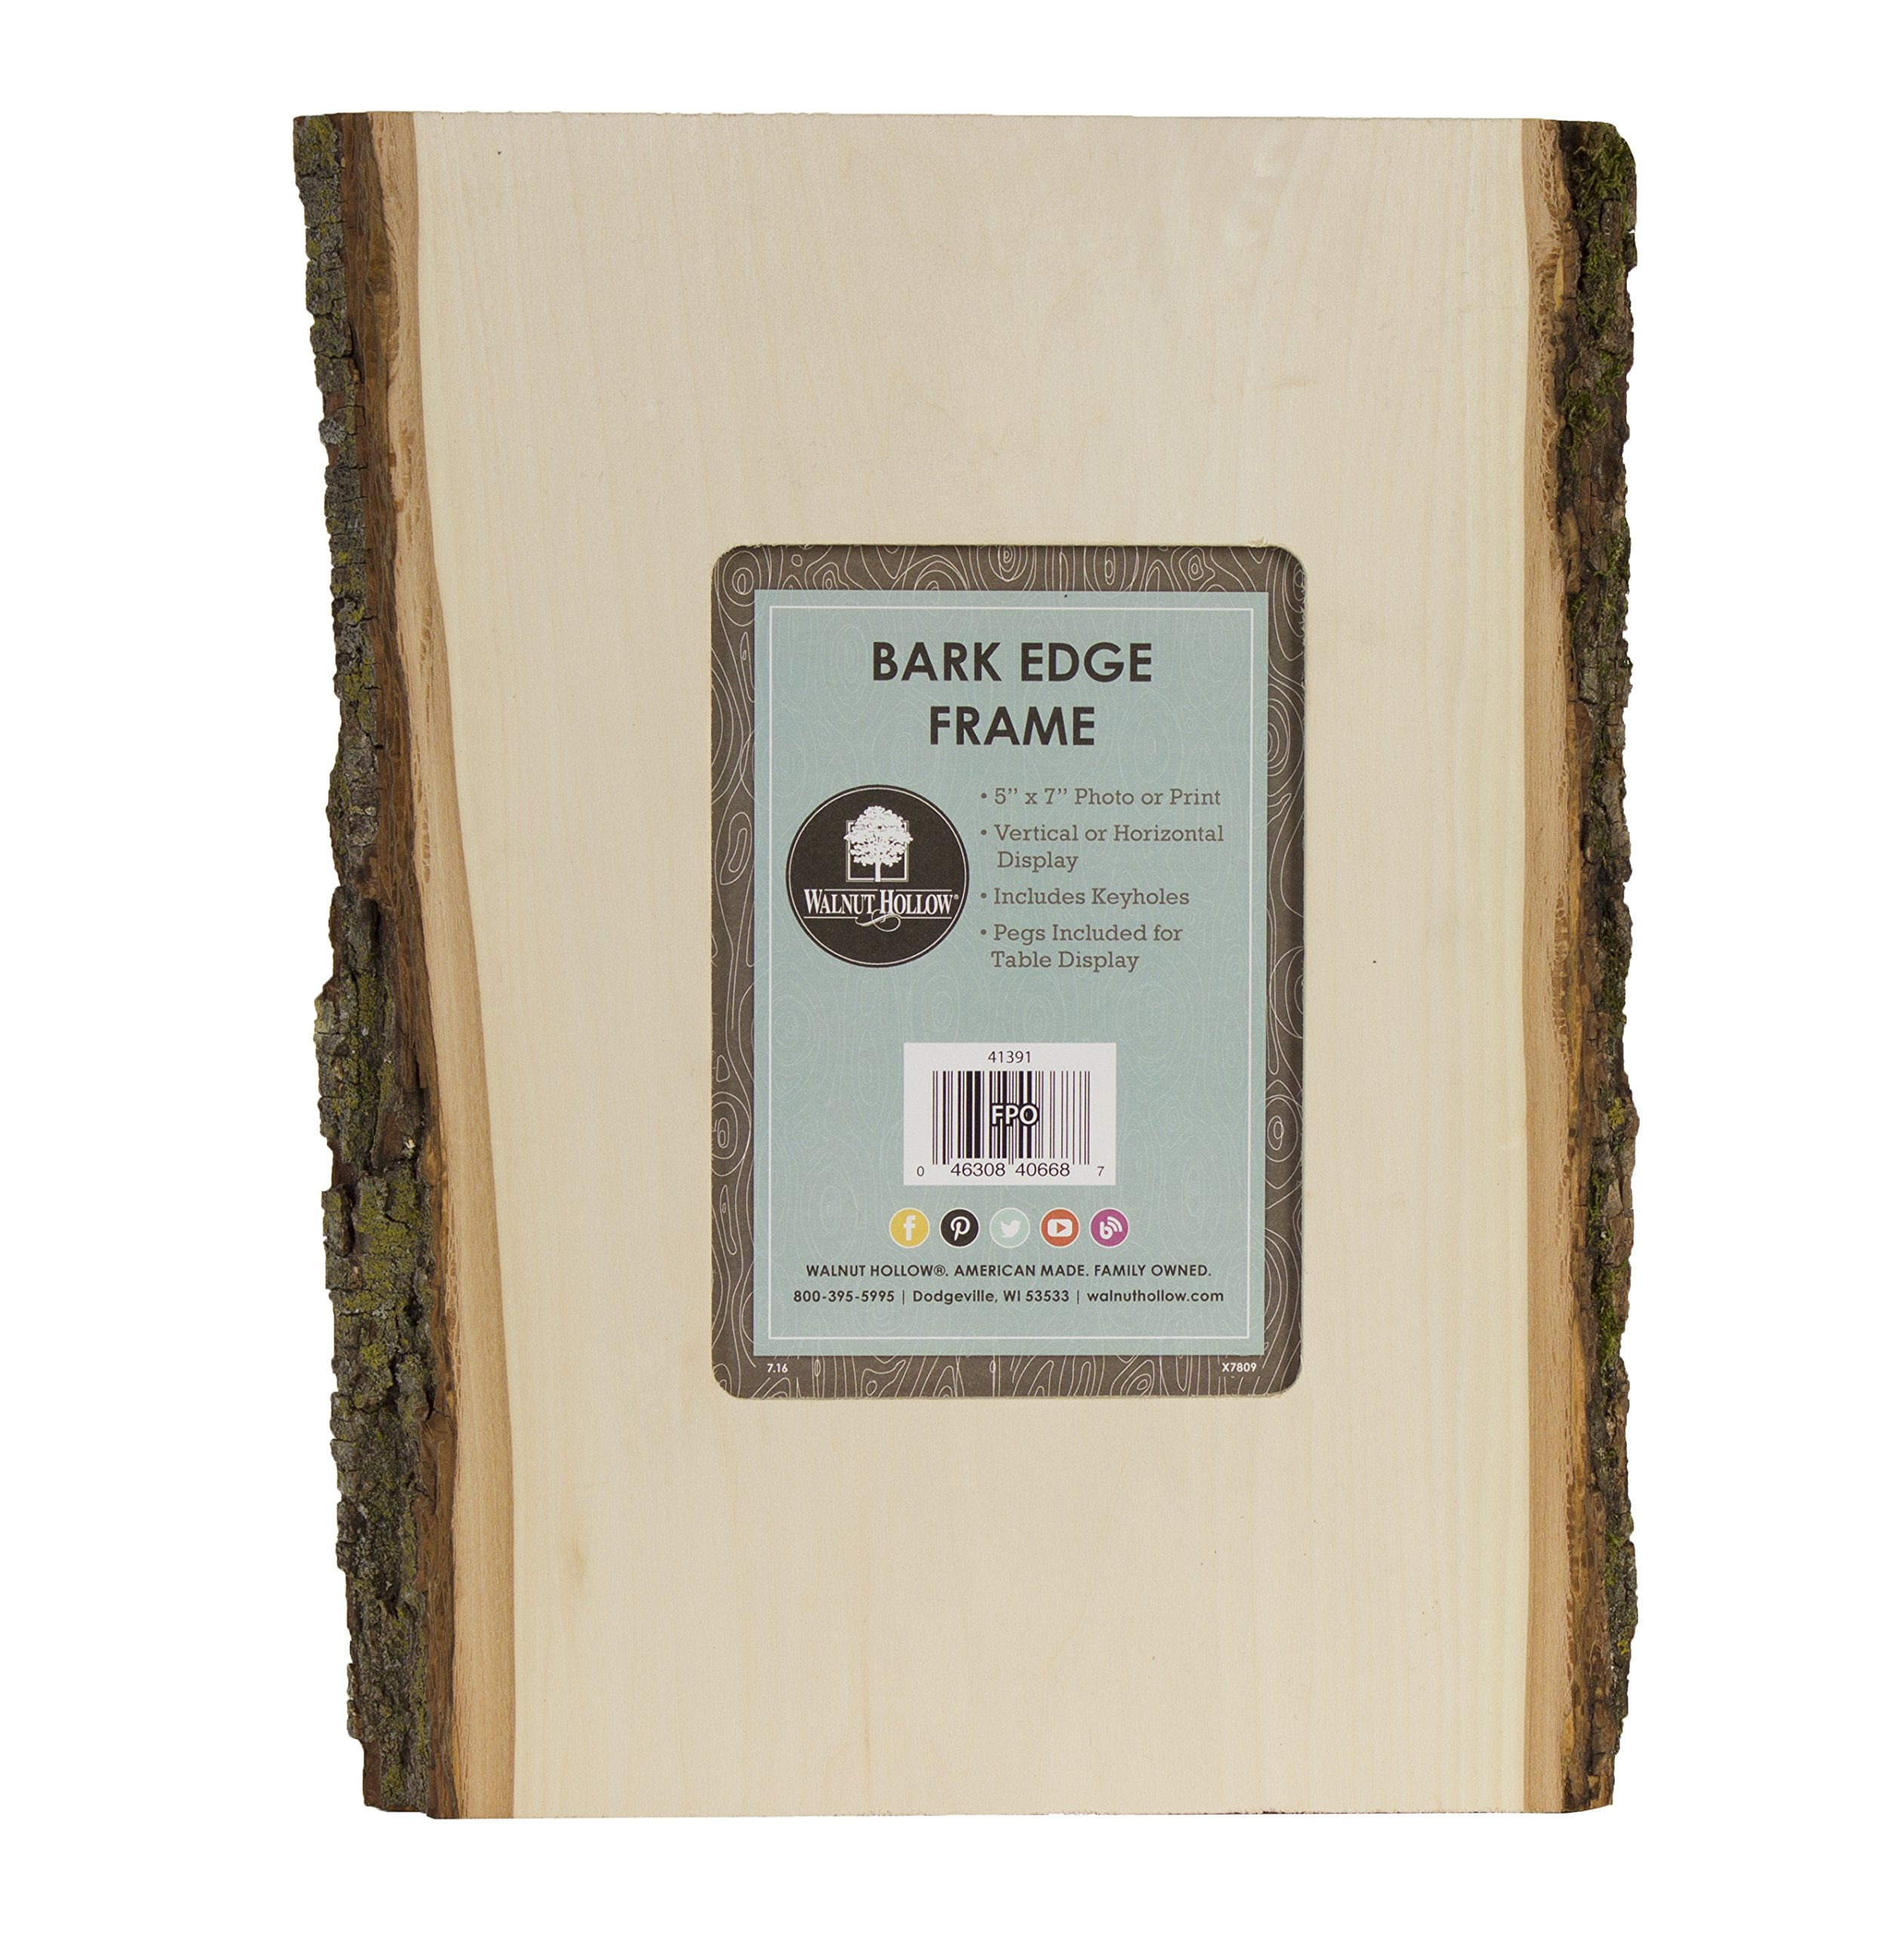 Walnut Hollow Picutre Picture Frame with Bark Edges for 5 x 7 Photo by Walnut Hollow